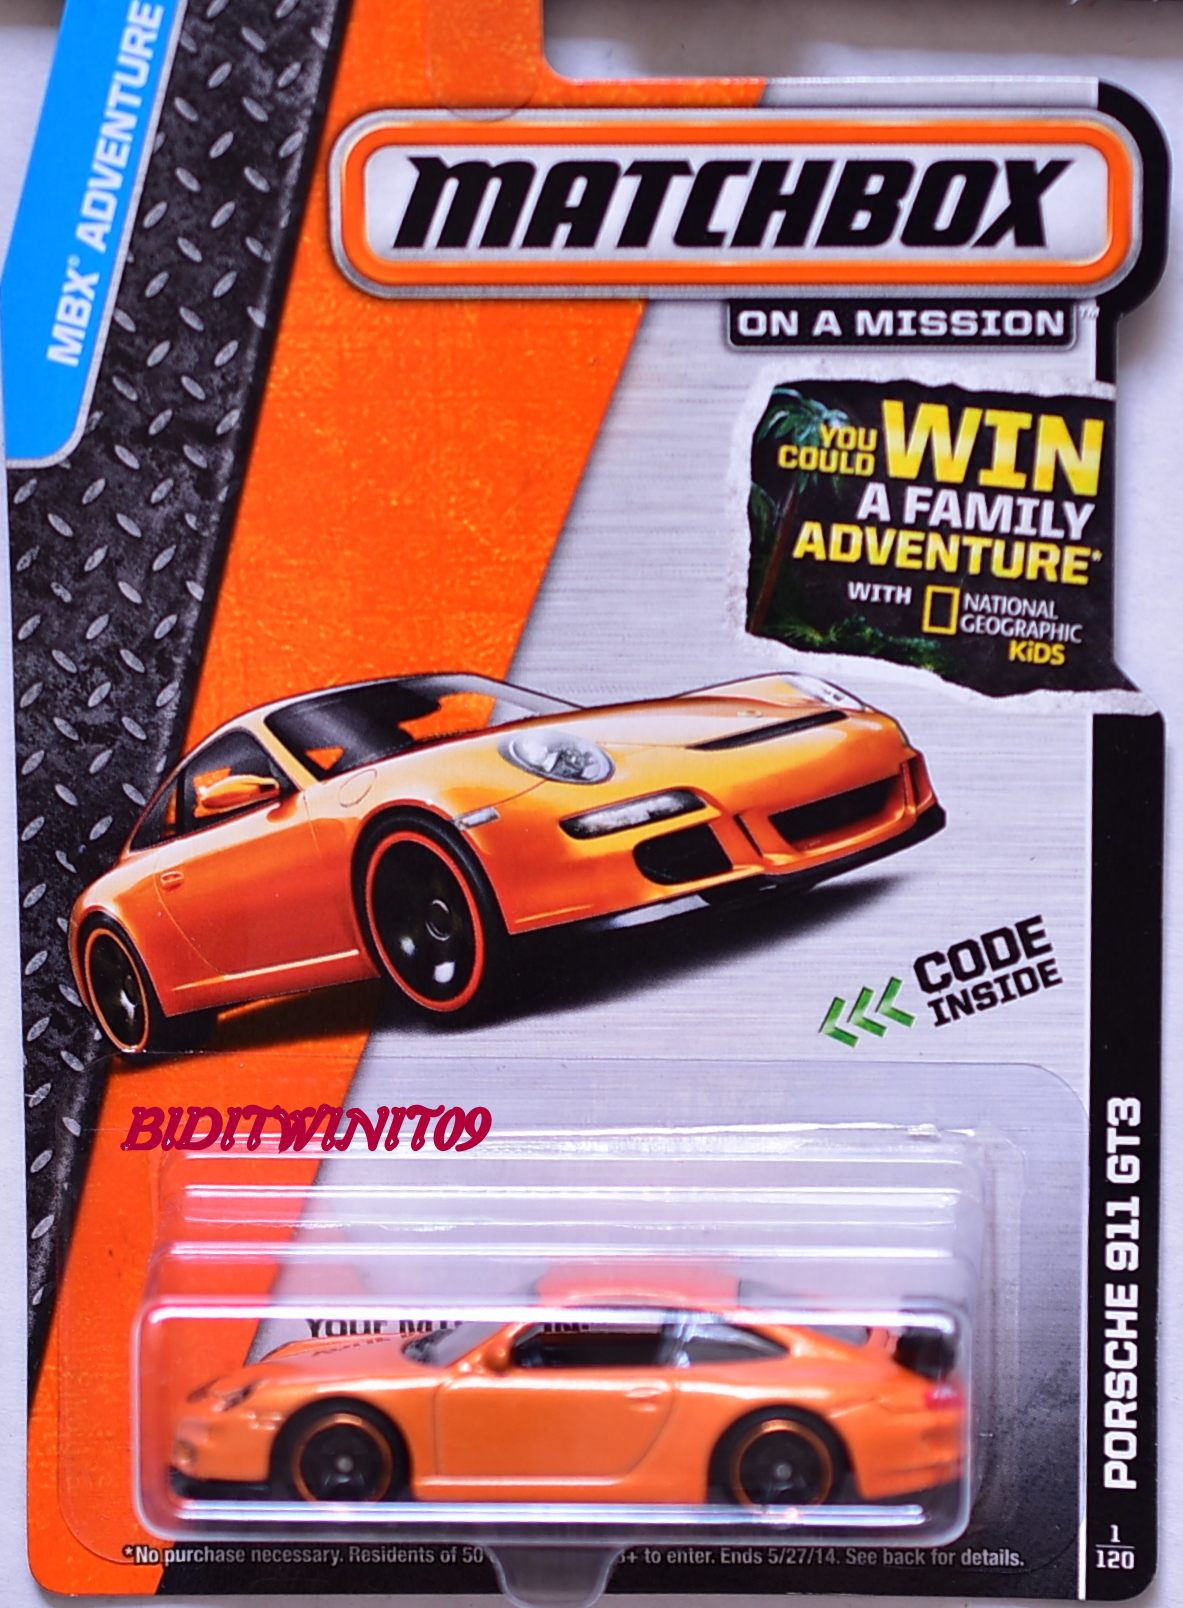 MATCHBOX 2013 ON A MISSION PORSCHE 911 GT3 E+